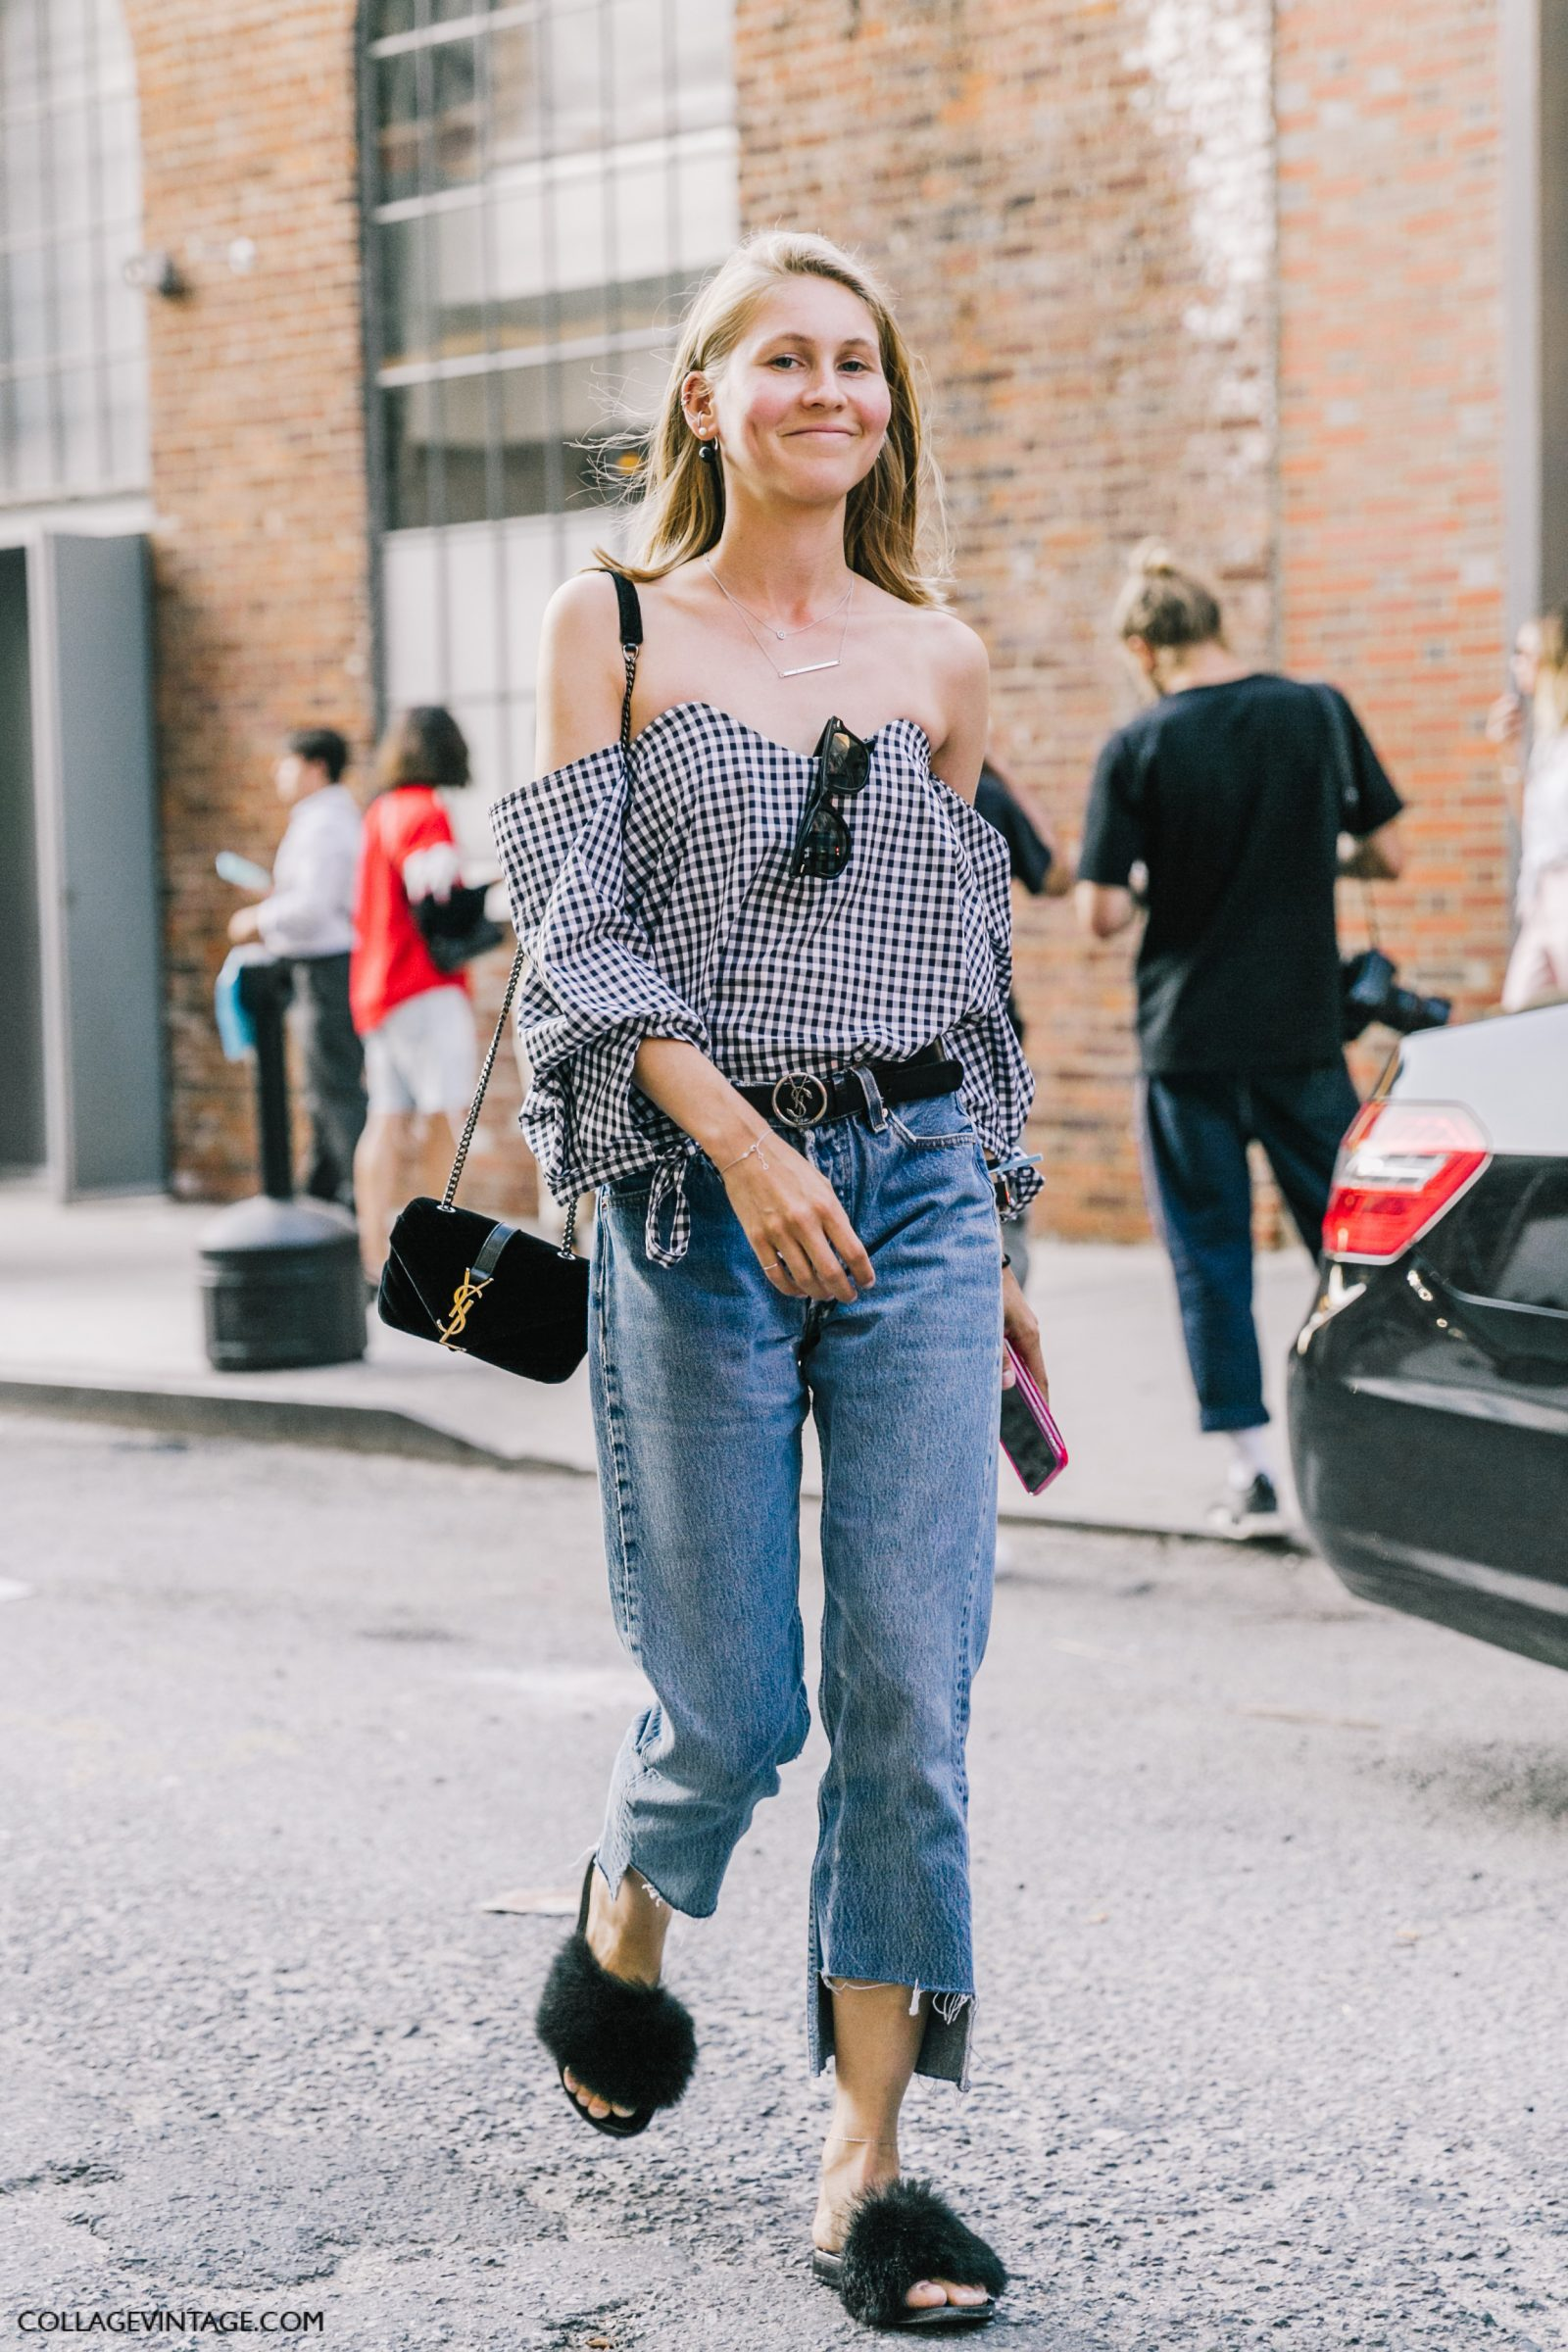 nyfw-new_york_fashion_week_ss17-street_style-outfits-collage_vintage-vintage-mansur_gavriel-rodarte-coach-277